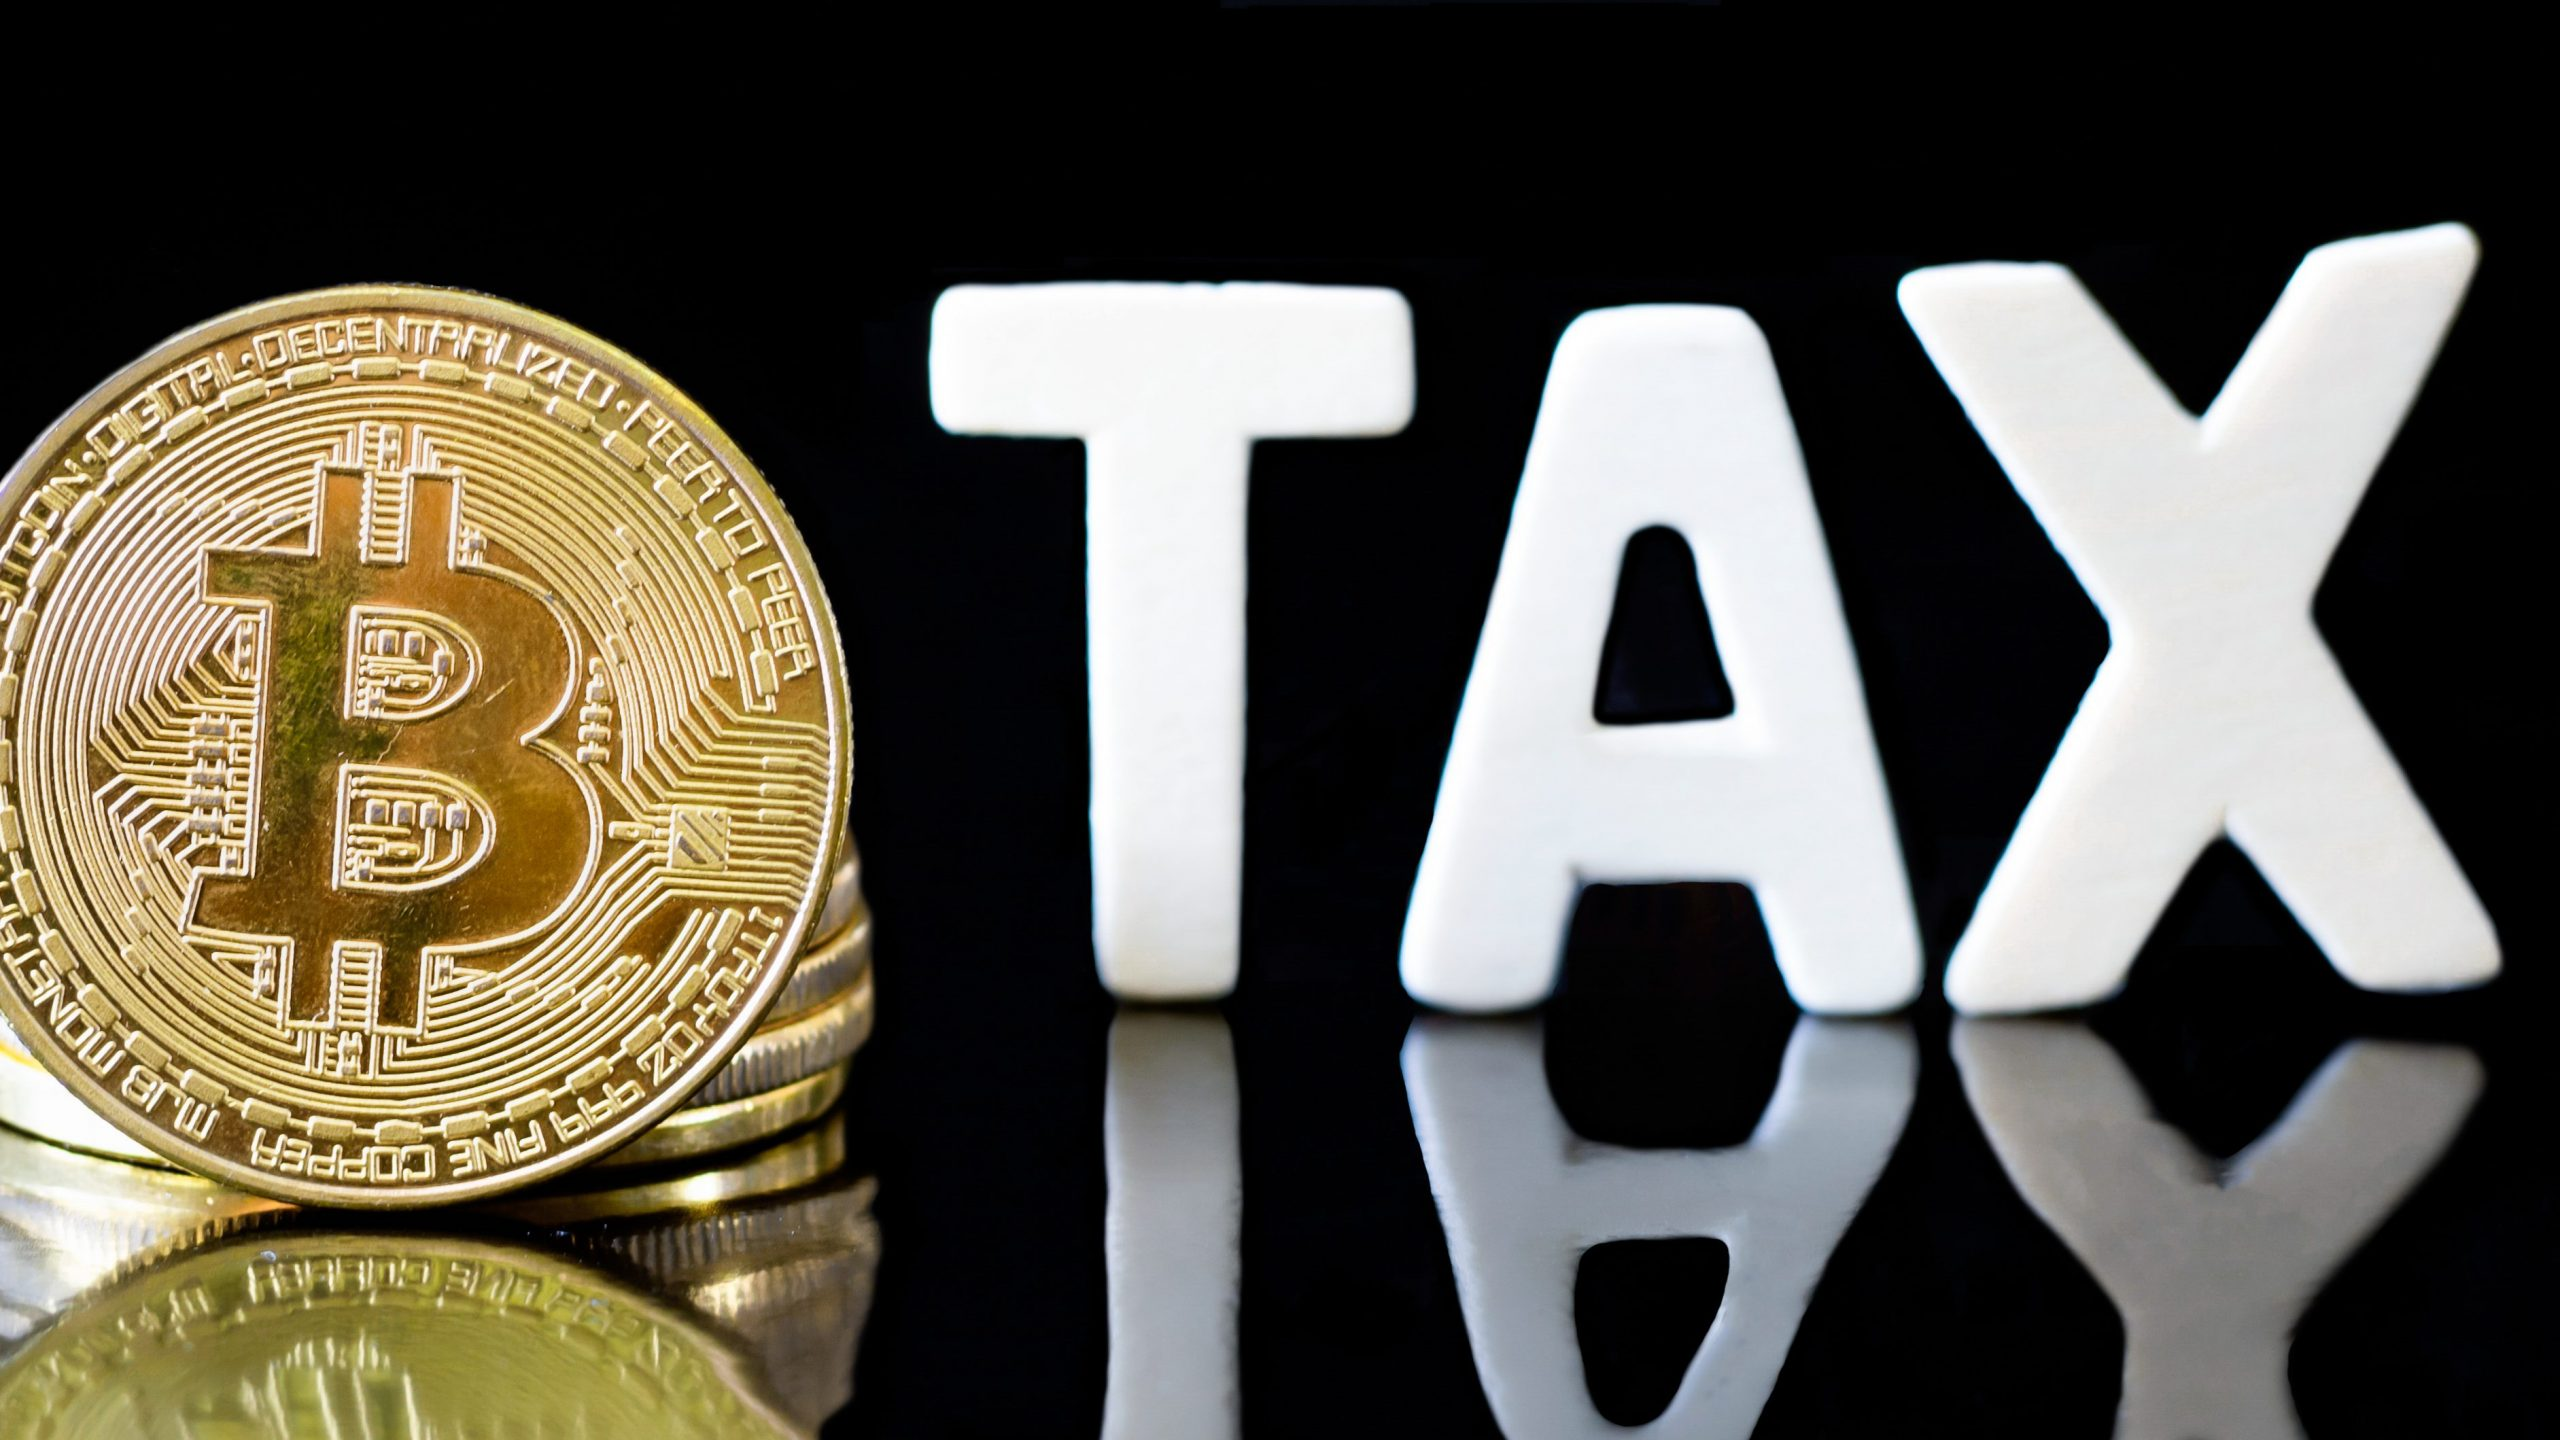 crypto-currency-bitcoin-coin-with-tax-message-concept-determining-tax-law-digital-money-1-3766x2119